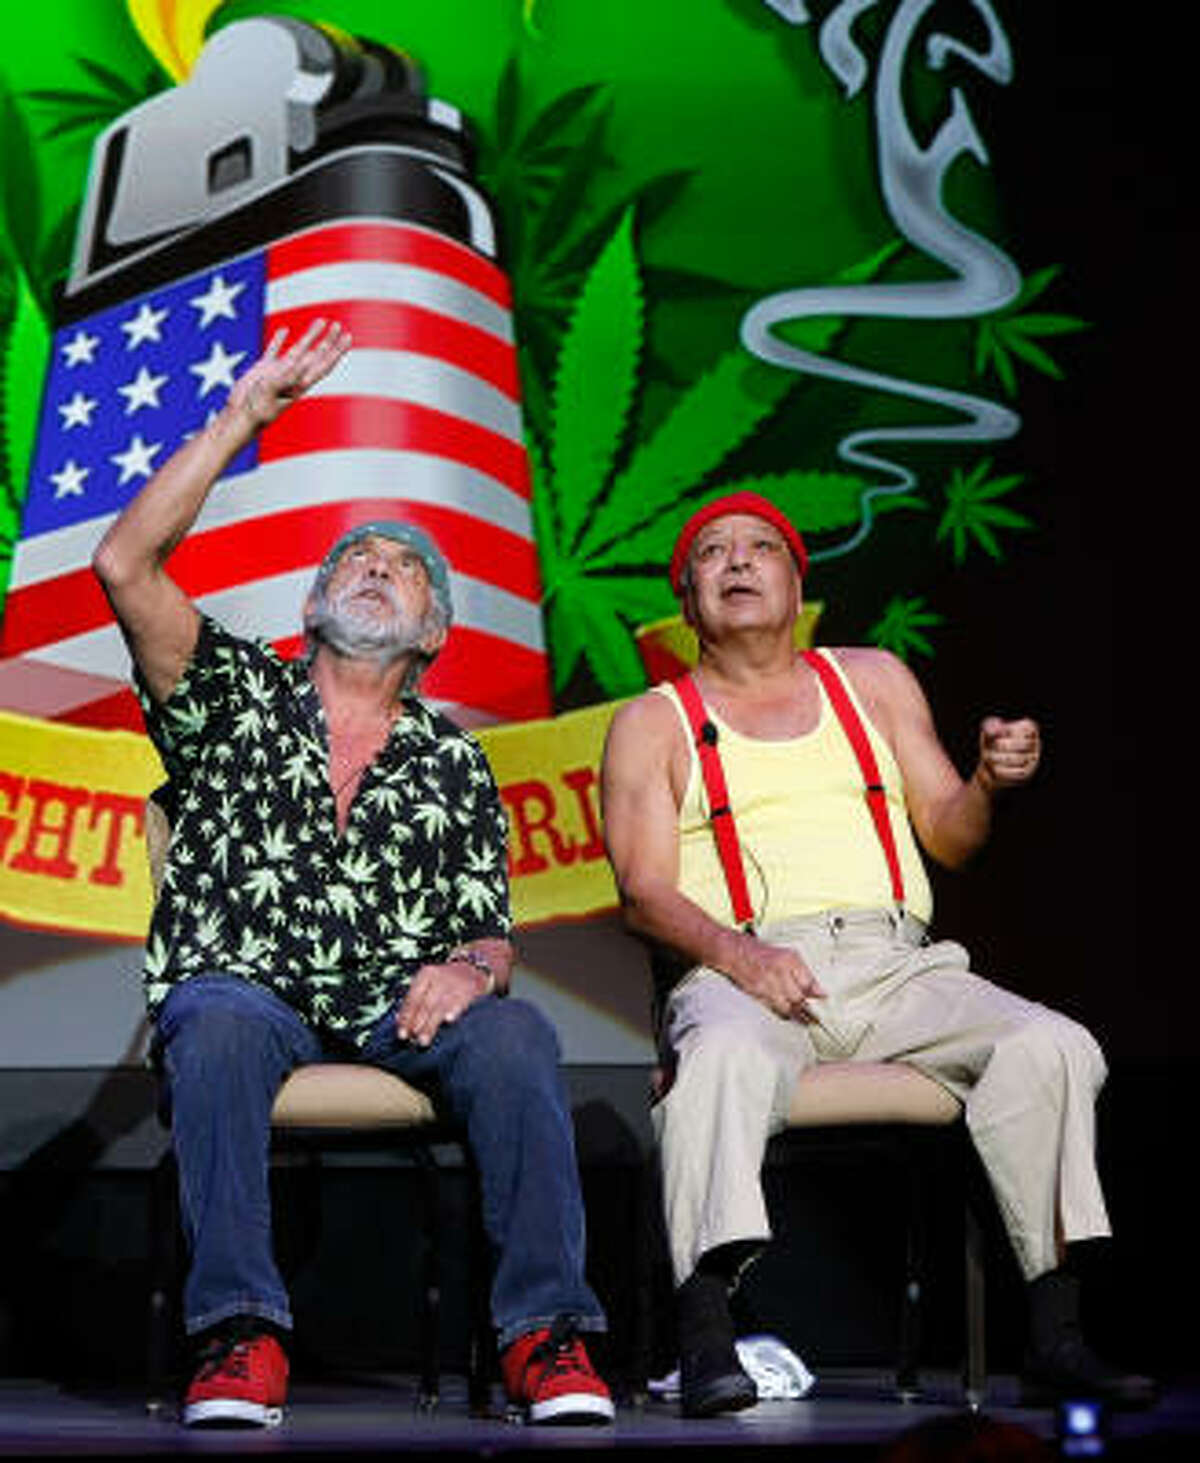 Tommy Chong, left, and Cheech Marin are feuding no more. The comedy duo's Light Up America reunion tour comes to Houston on Halloween.